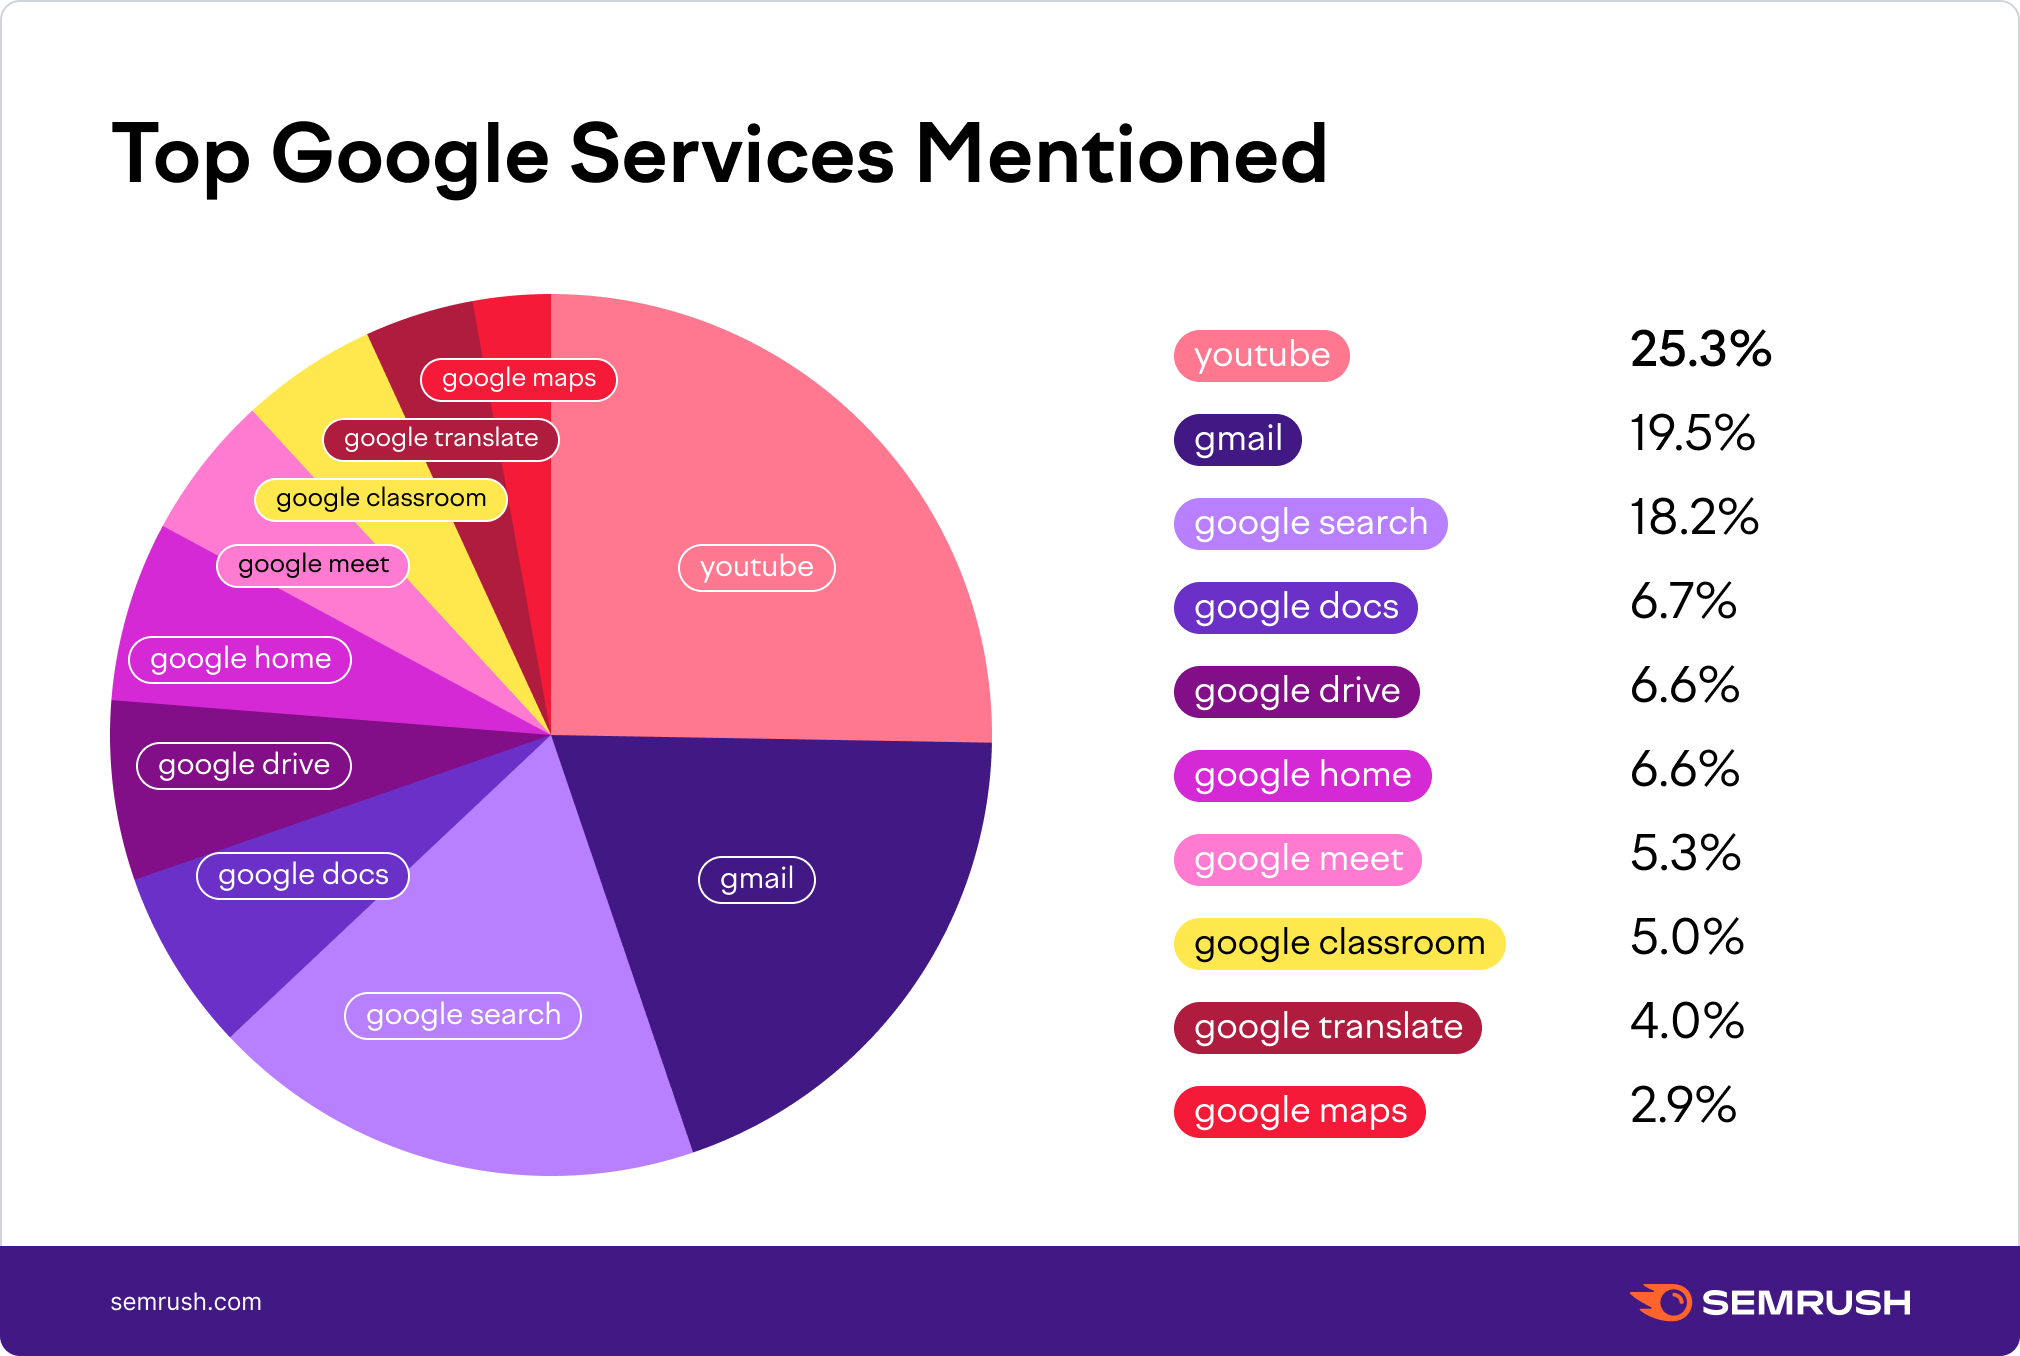 top google services mentioned pie chart